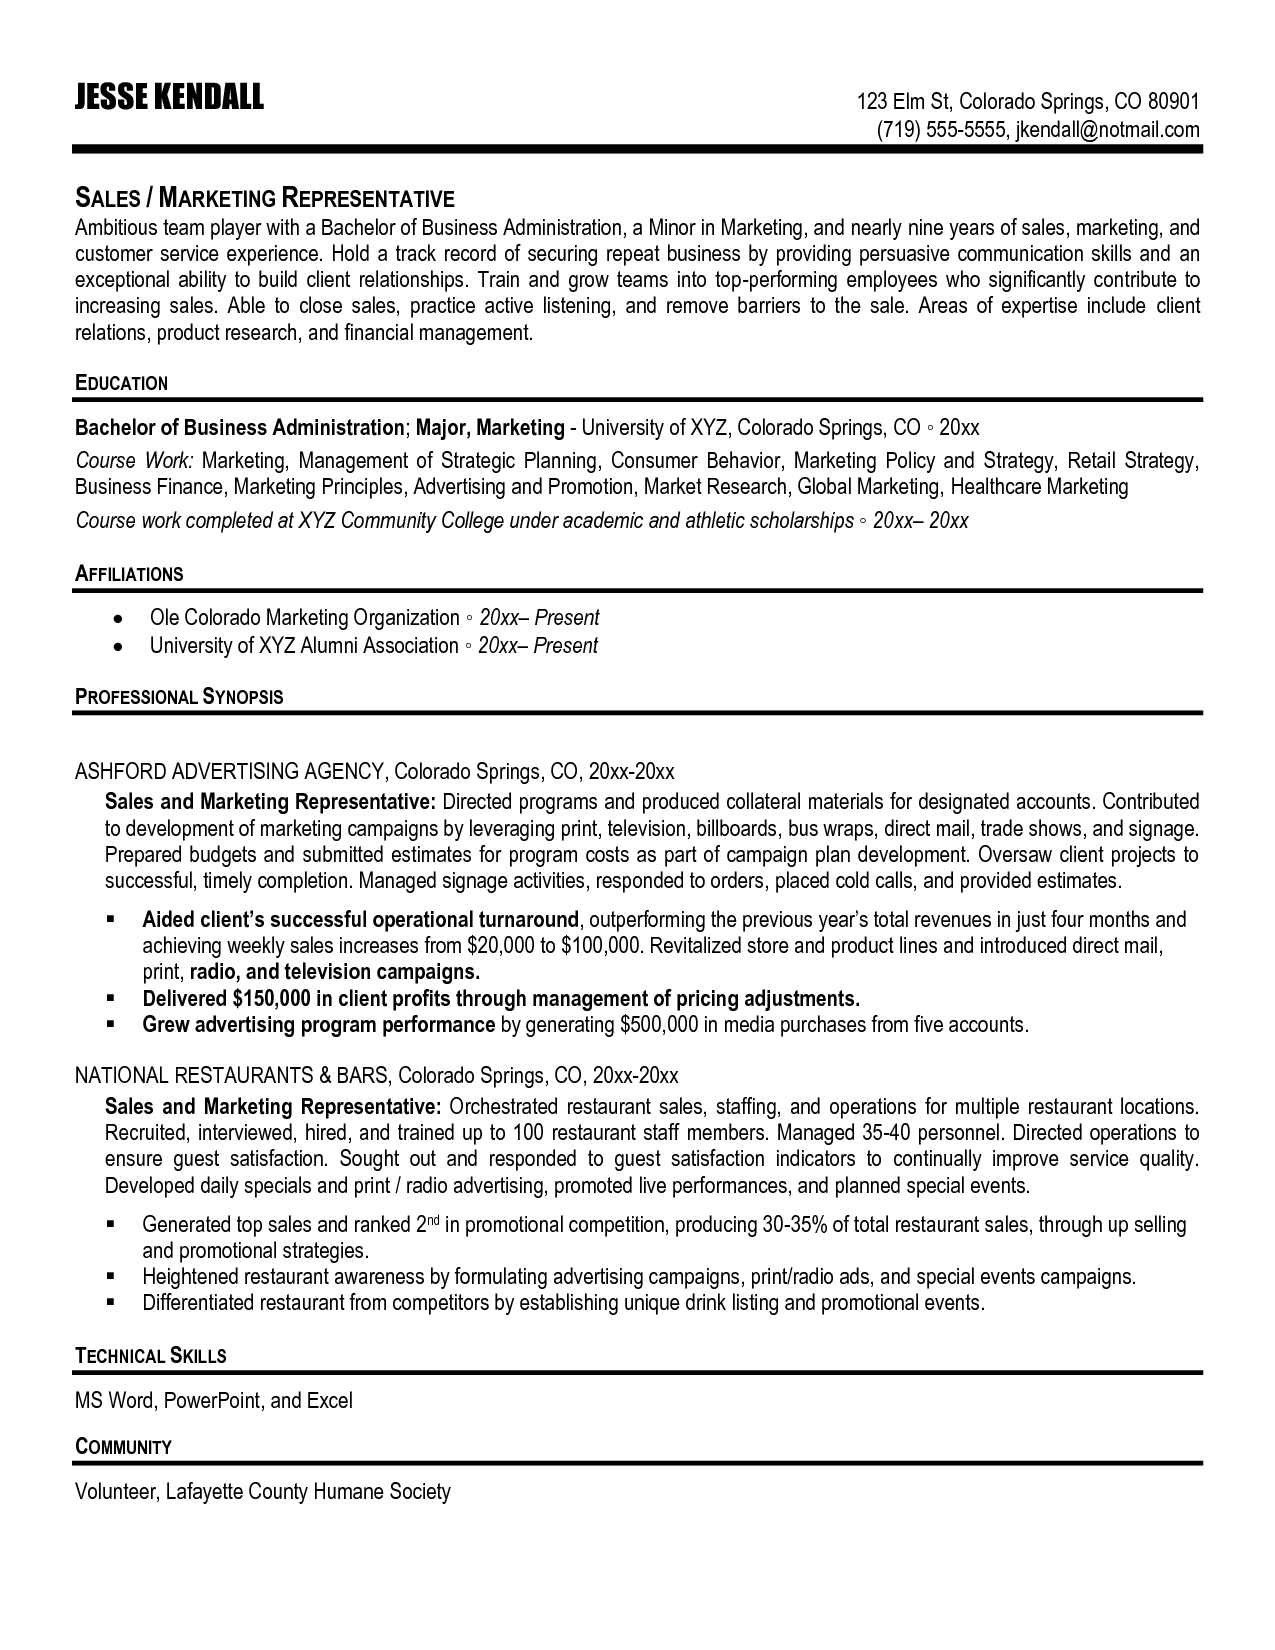 Telecom Sales Resume Manager Sample Apparel Field Engineer Cover Letter  Nuclear Security Officer